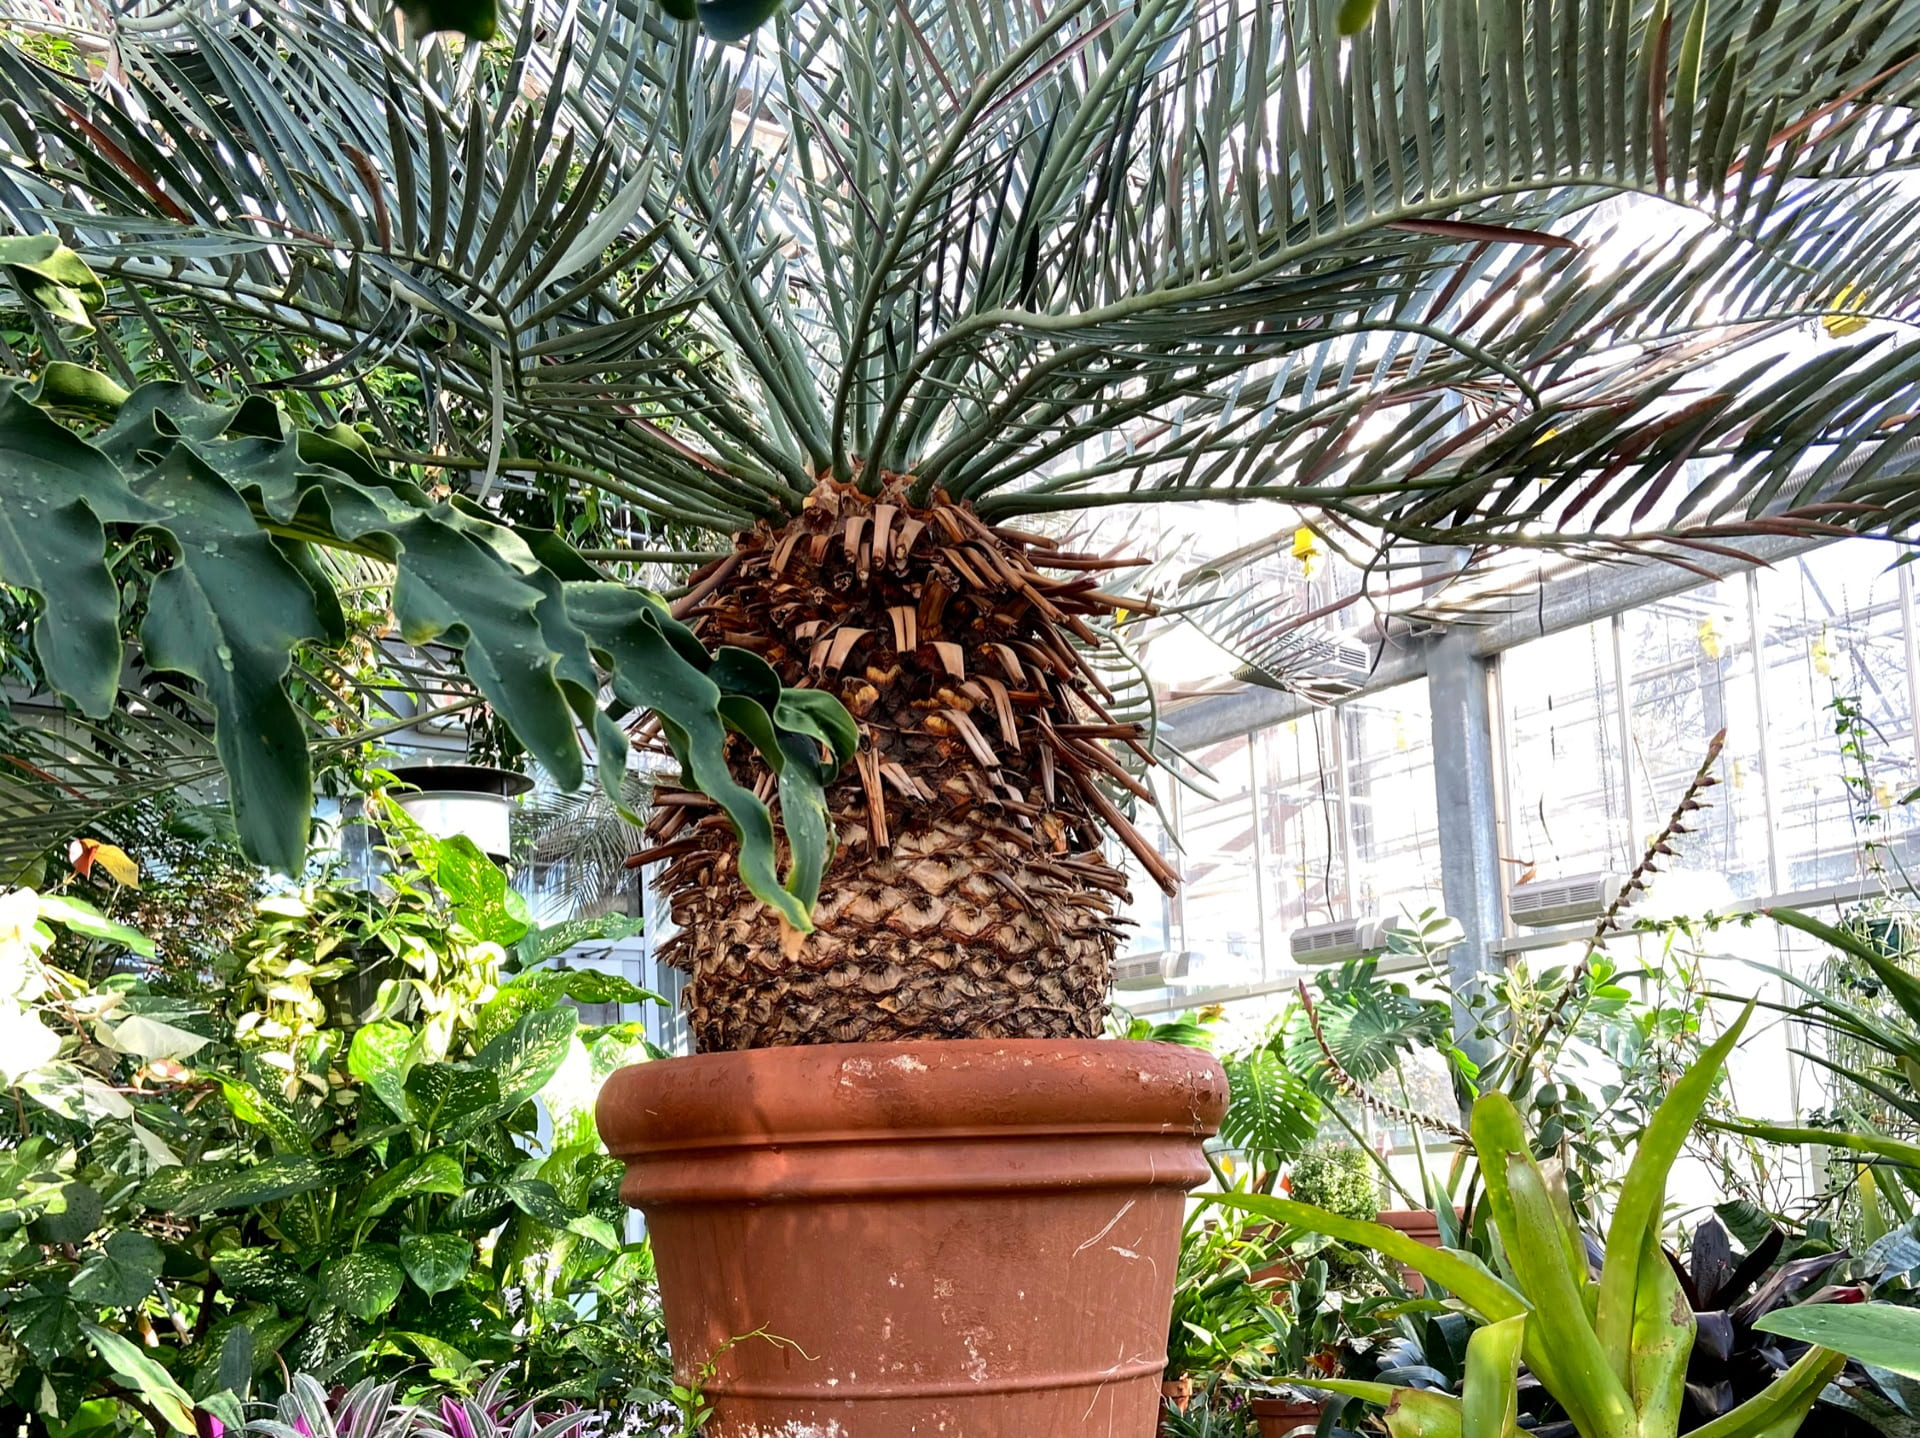 This Encephalartos lehmannii is the oldest plant in the collection at over 100 years old.